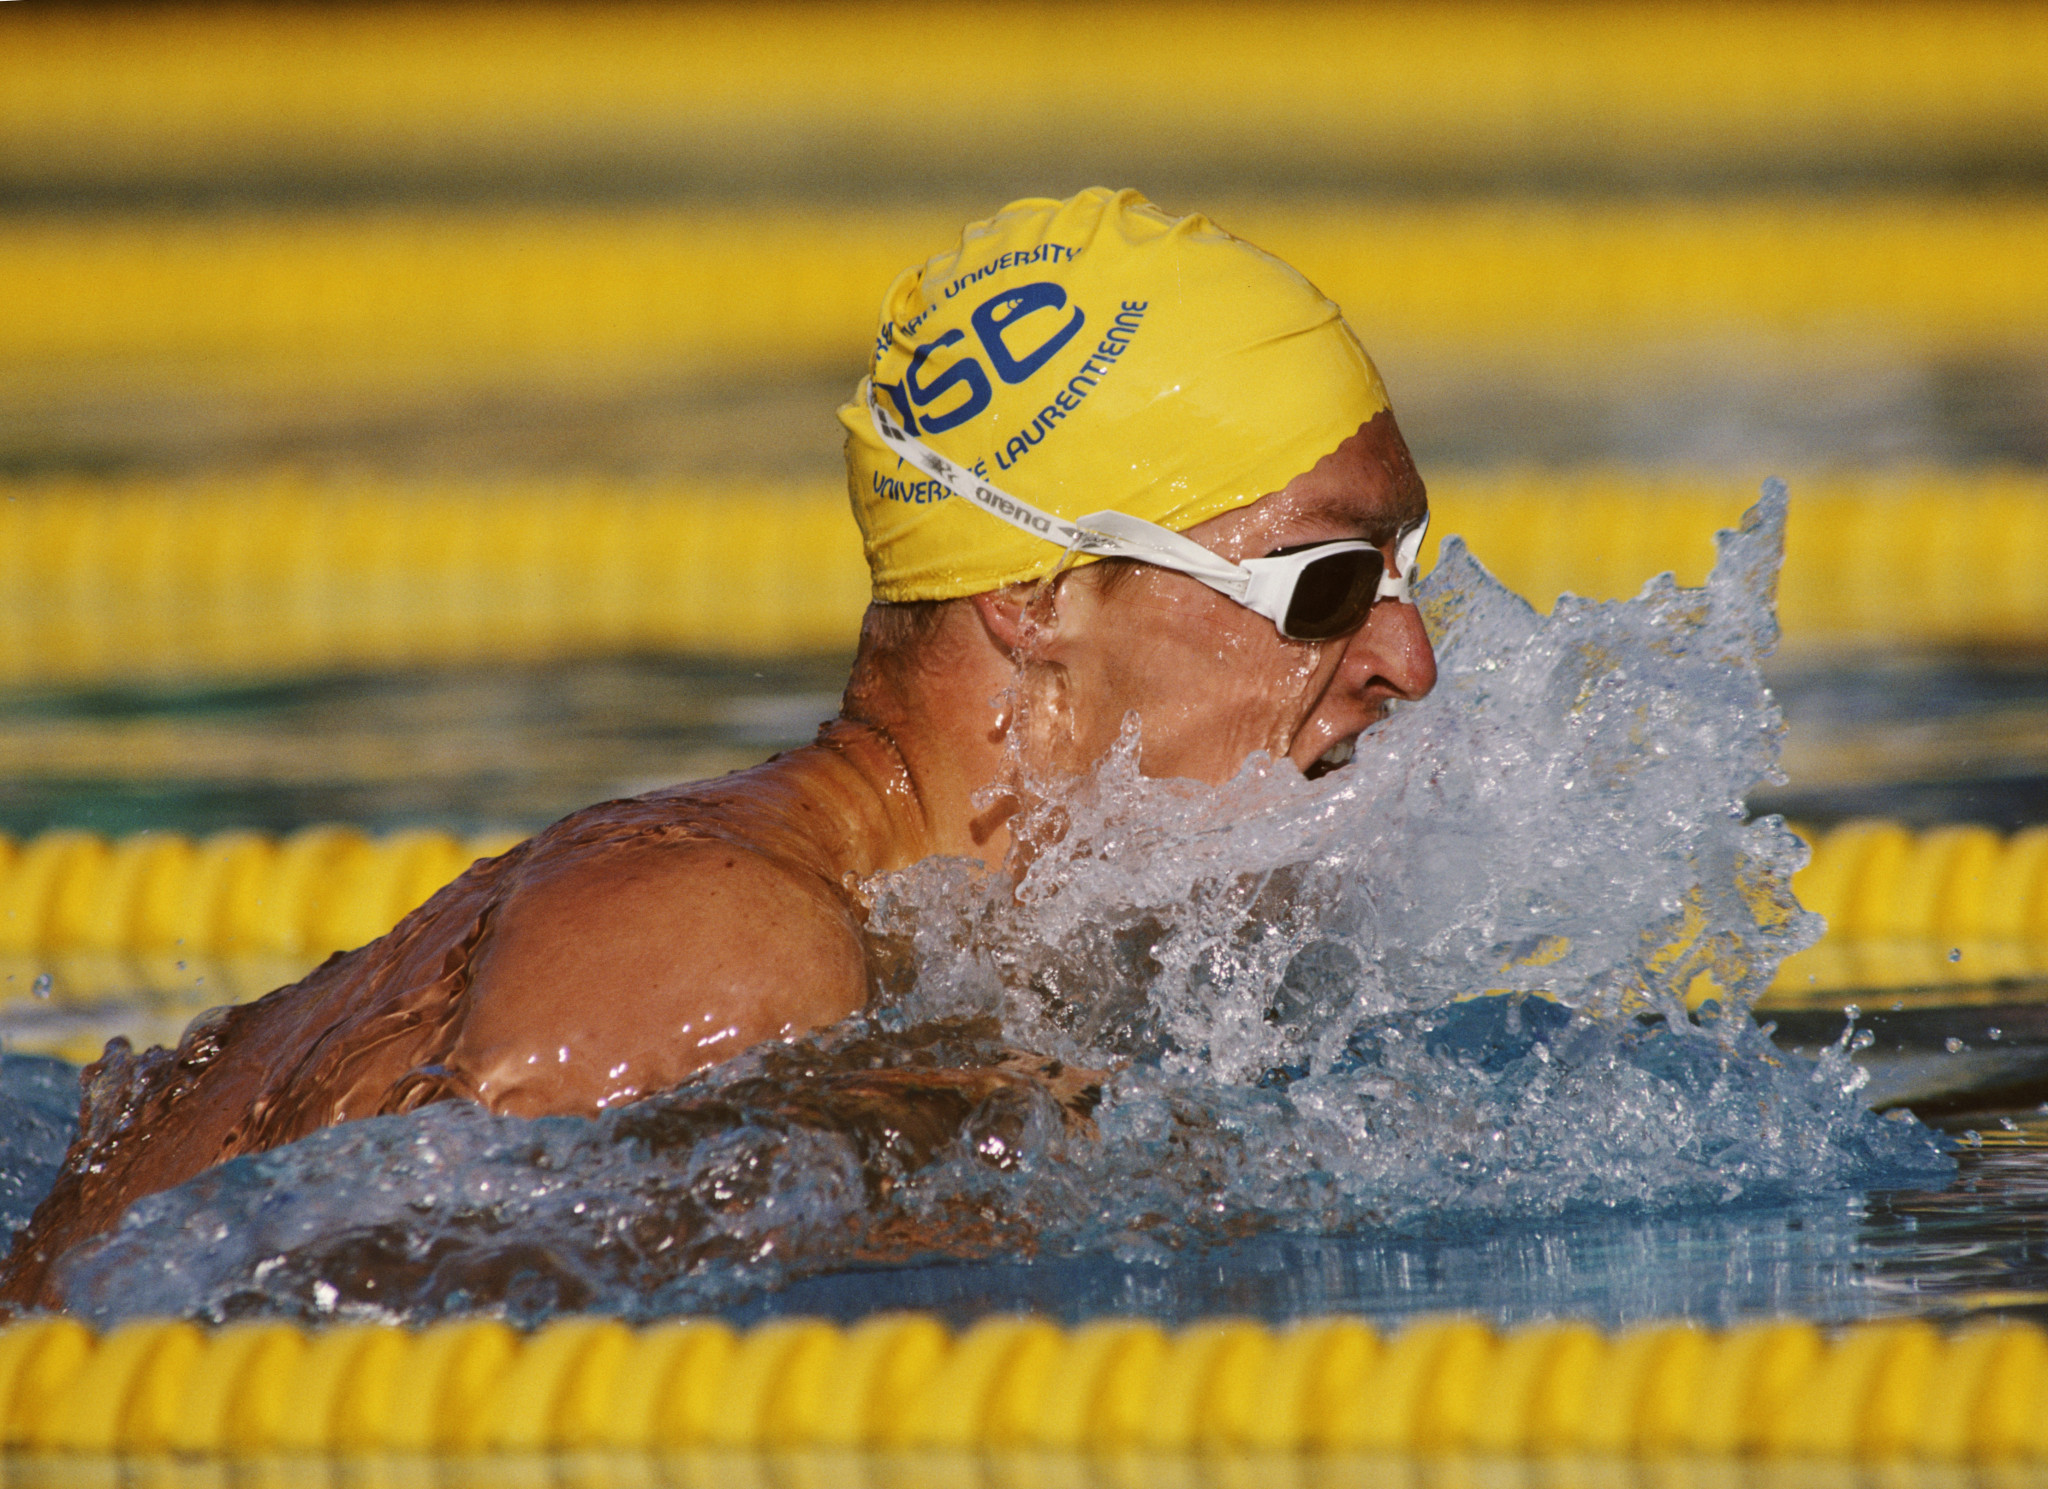 Alex Baumann won both the 200m and 400m individual swimming titles at the Los Angeles 1984 Olympic Games ©Getty Images